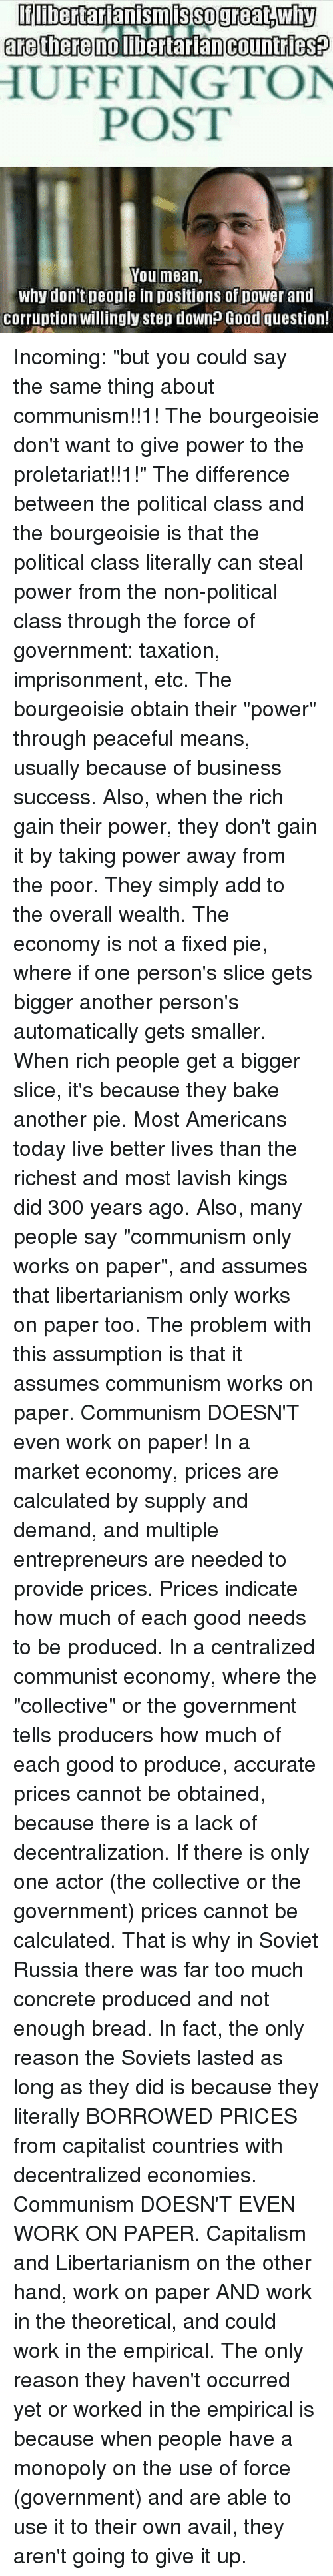 """Baked, Empire, and Memes: libertarianismis SO great DWhy  are there no libertarian Countries  HUFFINGTON  POST  You mean,  why don't people in positions of power and  Corruption Willingly step down? Good question! Incoming: """"but you could say the same thing about communism!!1! The bourgeoisie don't want to give power to the proletariat!!1!"""" The difference between the political class and the bourgeoisie is that the political class literally can steal power from the non-political class through the force of government: taxation, imprisonment, etc. The bourgeoisie obtain their """"power"""" through peaceful means, usually because of business success. Also, when the rich gain their power, they don't gain it by taking power away from the poor. They simply add to the overall wealth. The economy is not a fixed pie, where if one person's slice gets bigger another person's automatically gets smaller. When rich people get a bigger slice, it's because they bake another pie. Most Americans today live better lives than the richest and most lavish kings did 300 years ago. Also, many people say """"communism only works on paper"""", and assumes that libertarianism only works on paper too. The problem with this assumption is that it assumes communism works on paper. Communism DOESN'T even work on paper! In a market economy, prices are calculated by supply and demand, and multiple entrepreneurs are needed to provide prices. Prices indicate how much of each good needs to be produced. In a centralized communist economy, where the """"collective"""" or the government tells producers how much of each good to produce, accurate prices cannot be obtained, because there is a lack of decentralization. If there is only one actor (the collective or the government) prices cannot be calculated. That is why in Soviet Russia there was far too much concrete produced and not enough bread. In fact, the only reason the Soviets lasted as long as they did is because they literally BORROWED PRICES from capitalist countries"""